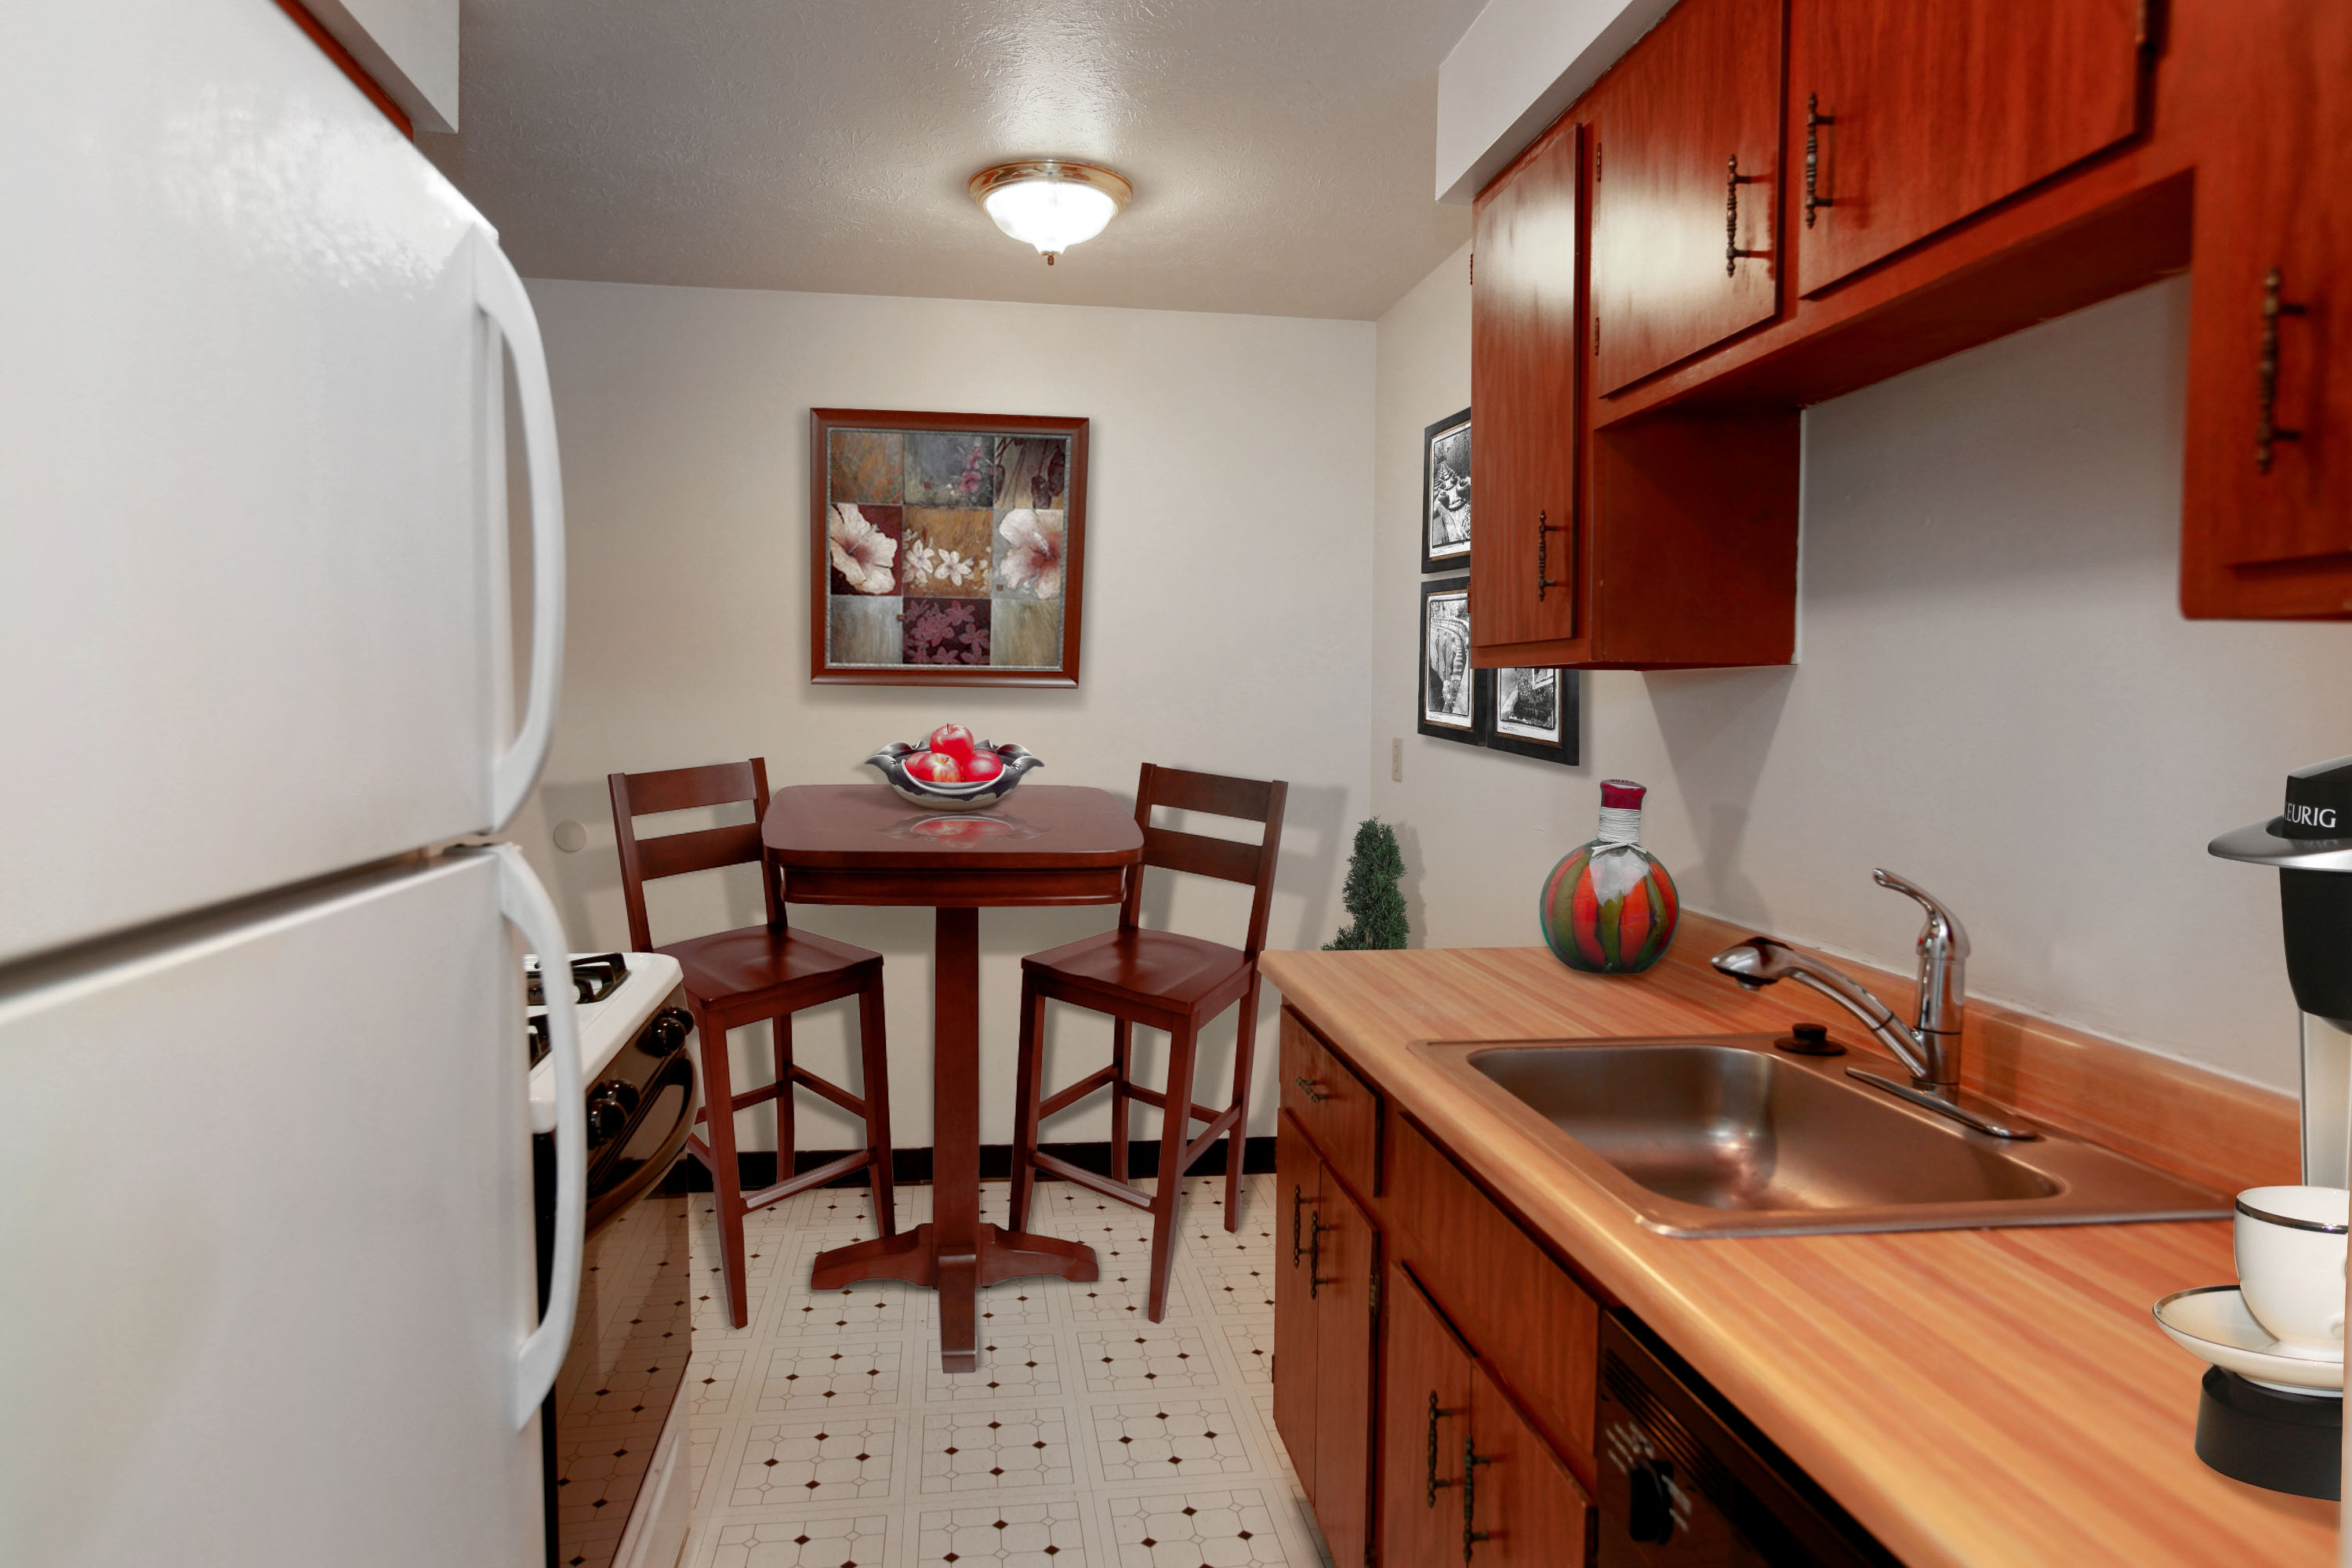 2C Eat-in Kitchen at the Greenridge on Euclid Apartments in Euclid, OH